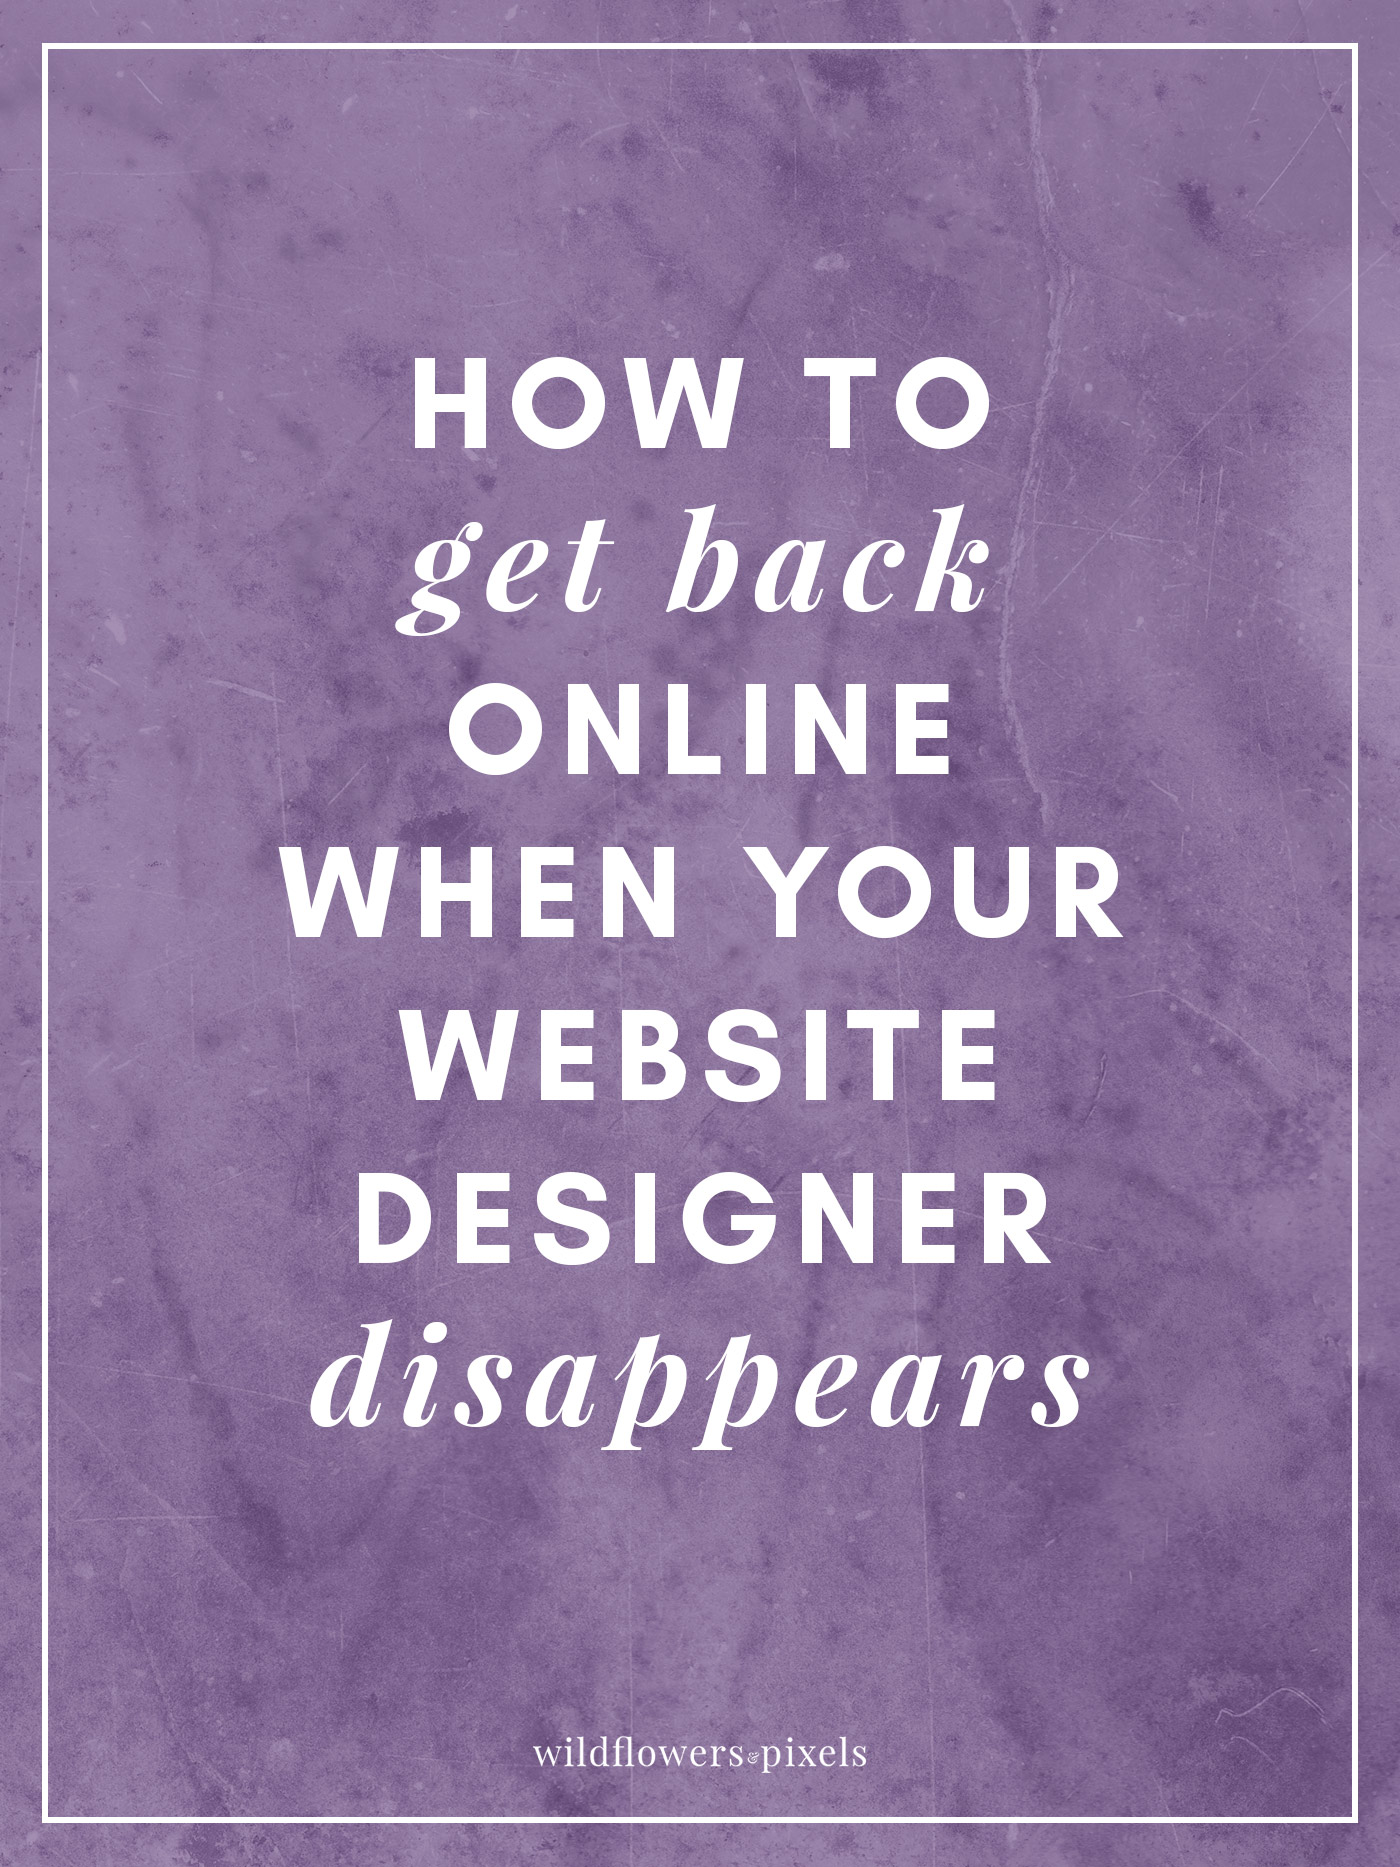 How To Get Back Online When Your Website Designer Disappears